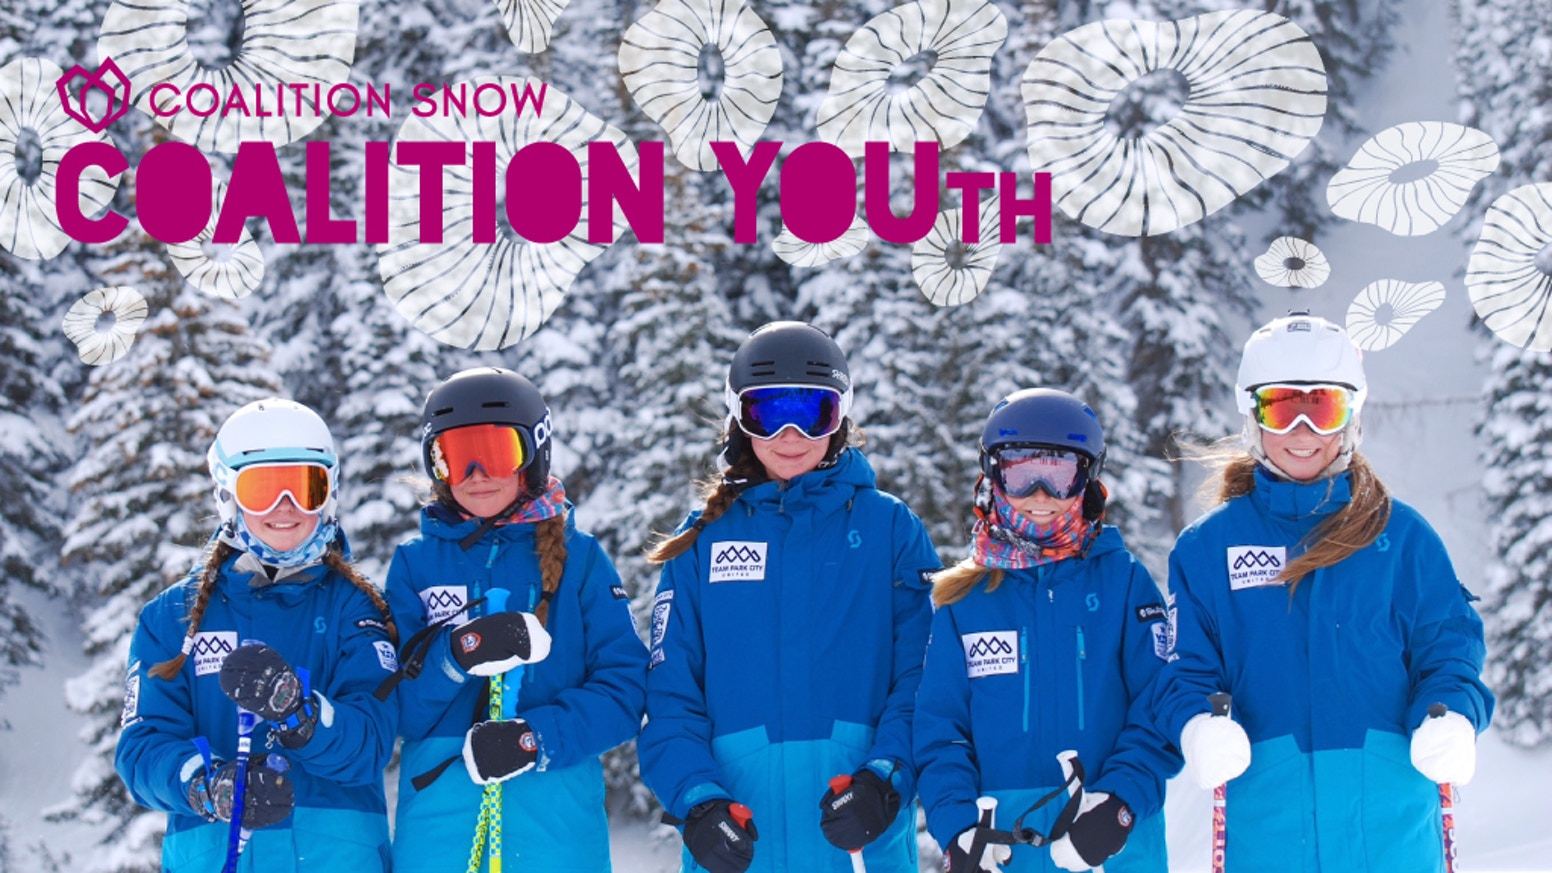 Coalition Snow YOUth Skis & Snowboards